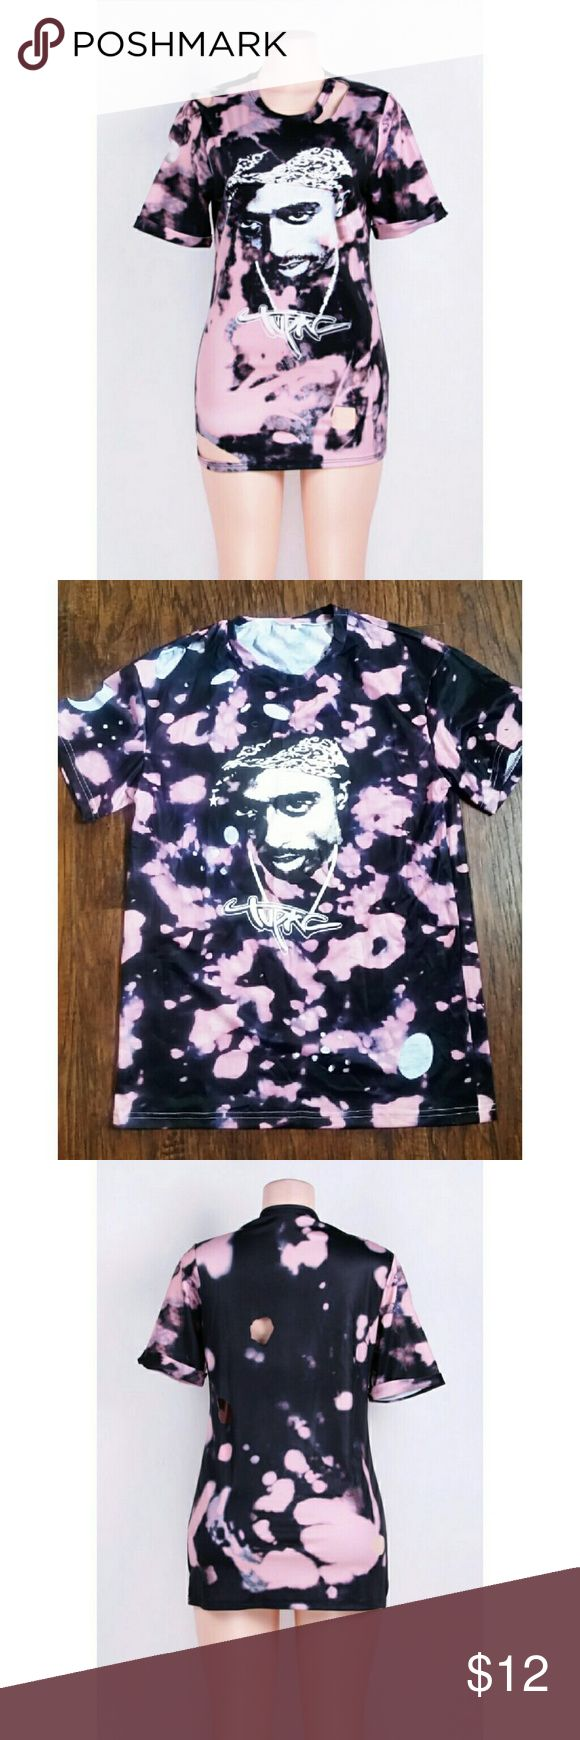 New Tupac T-Shirt Shakur Acid wash pink printed Tupac T-Shirt with holes. Festival, hip hop, 2pac, 90s Tops Tees - Short Sleeve